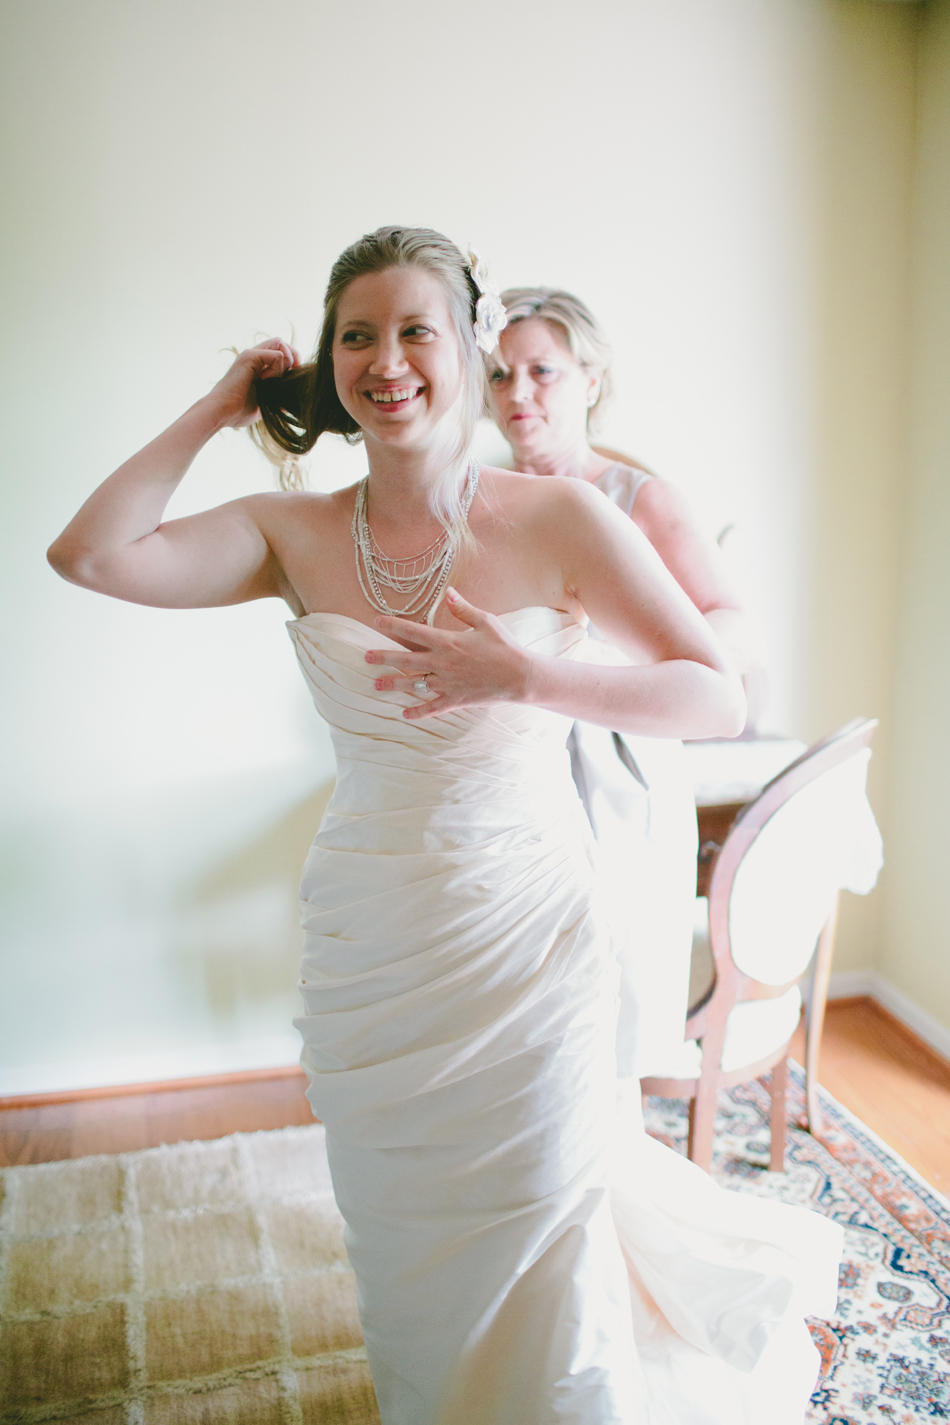 Brahma-ridge-asheville-wedding011.jpg